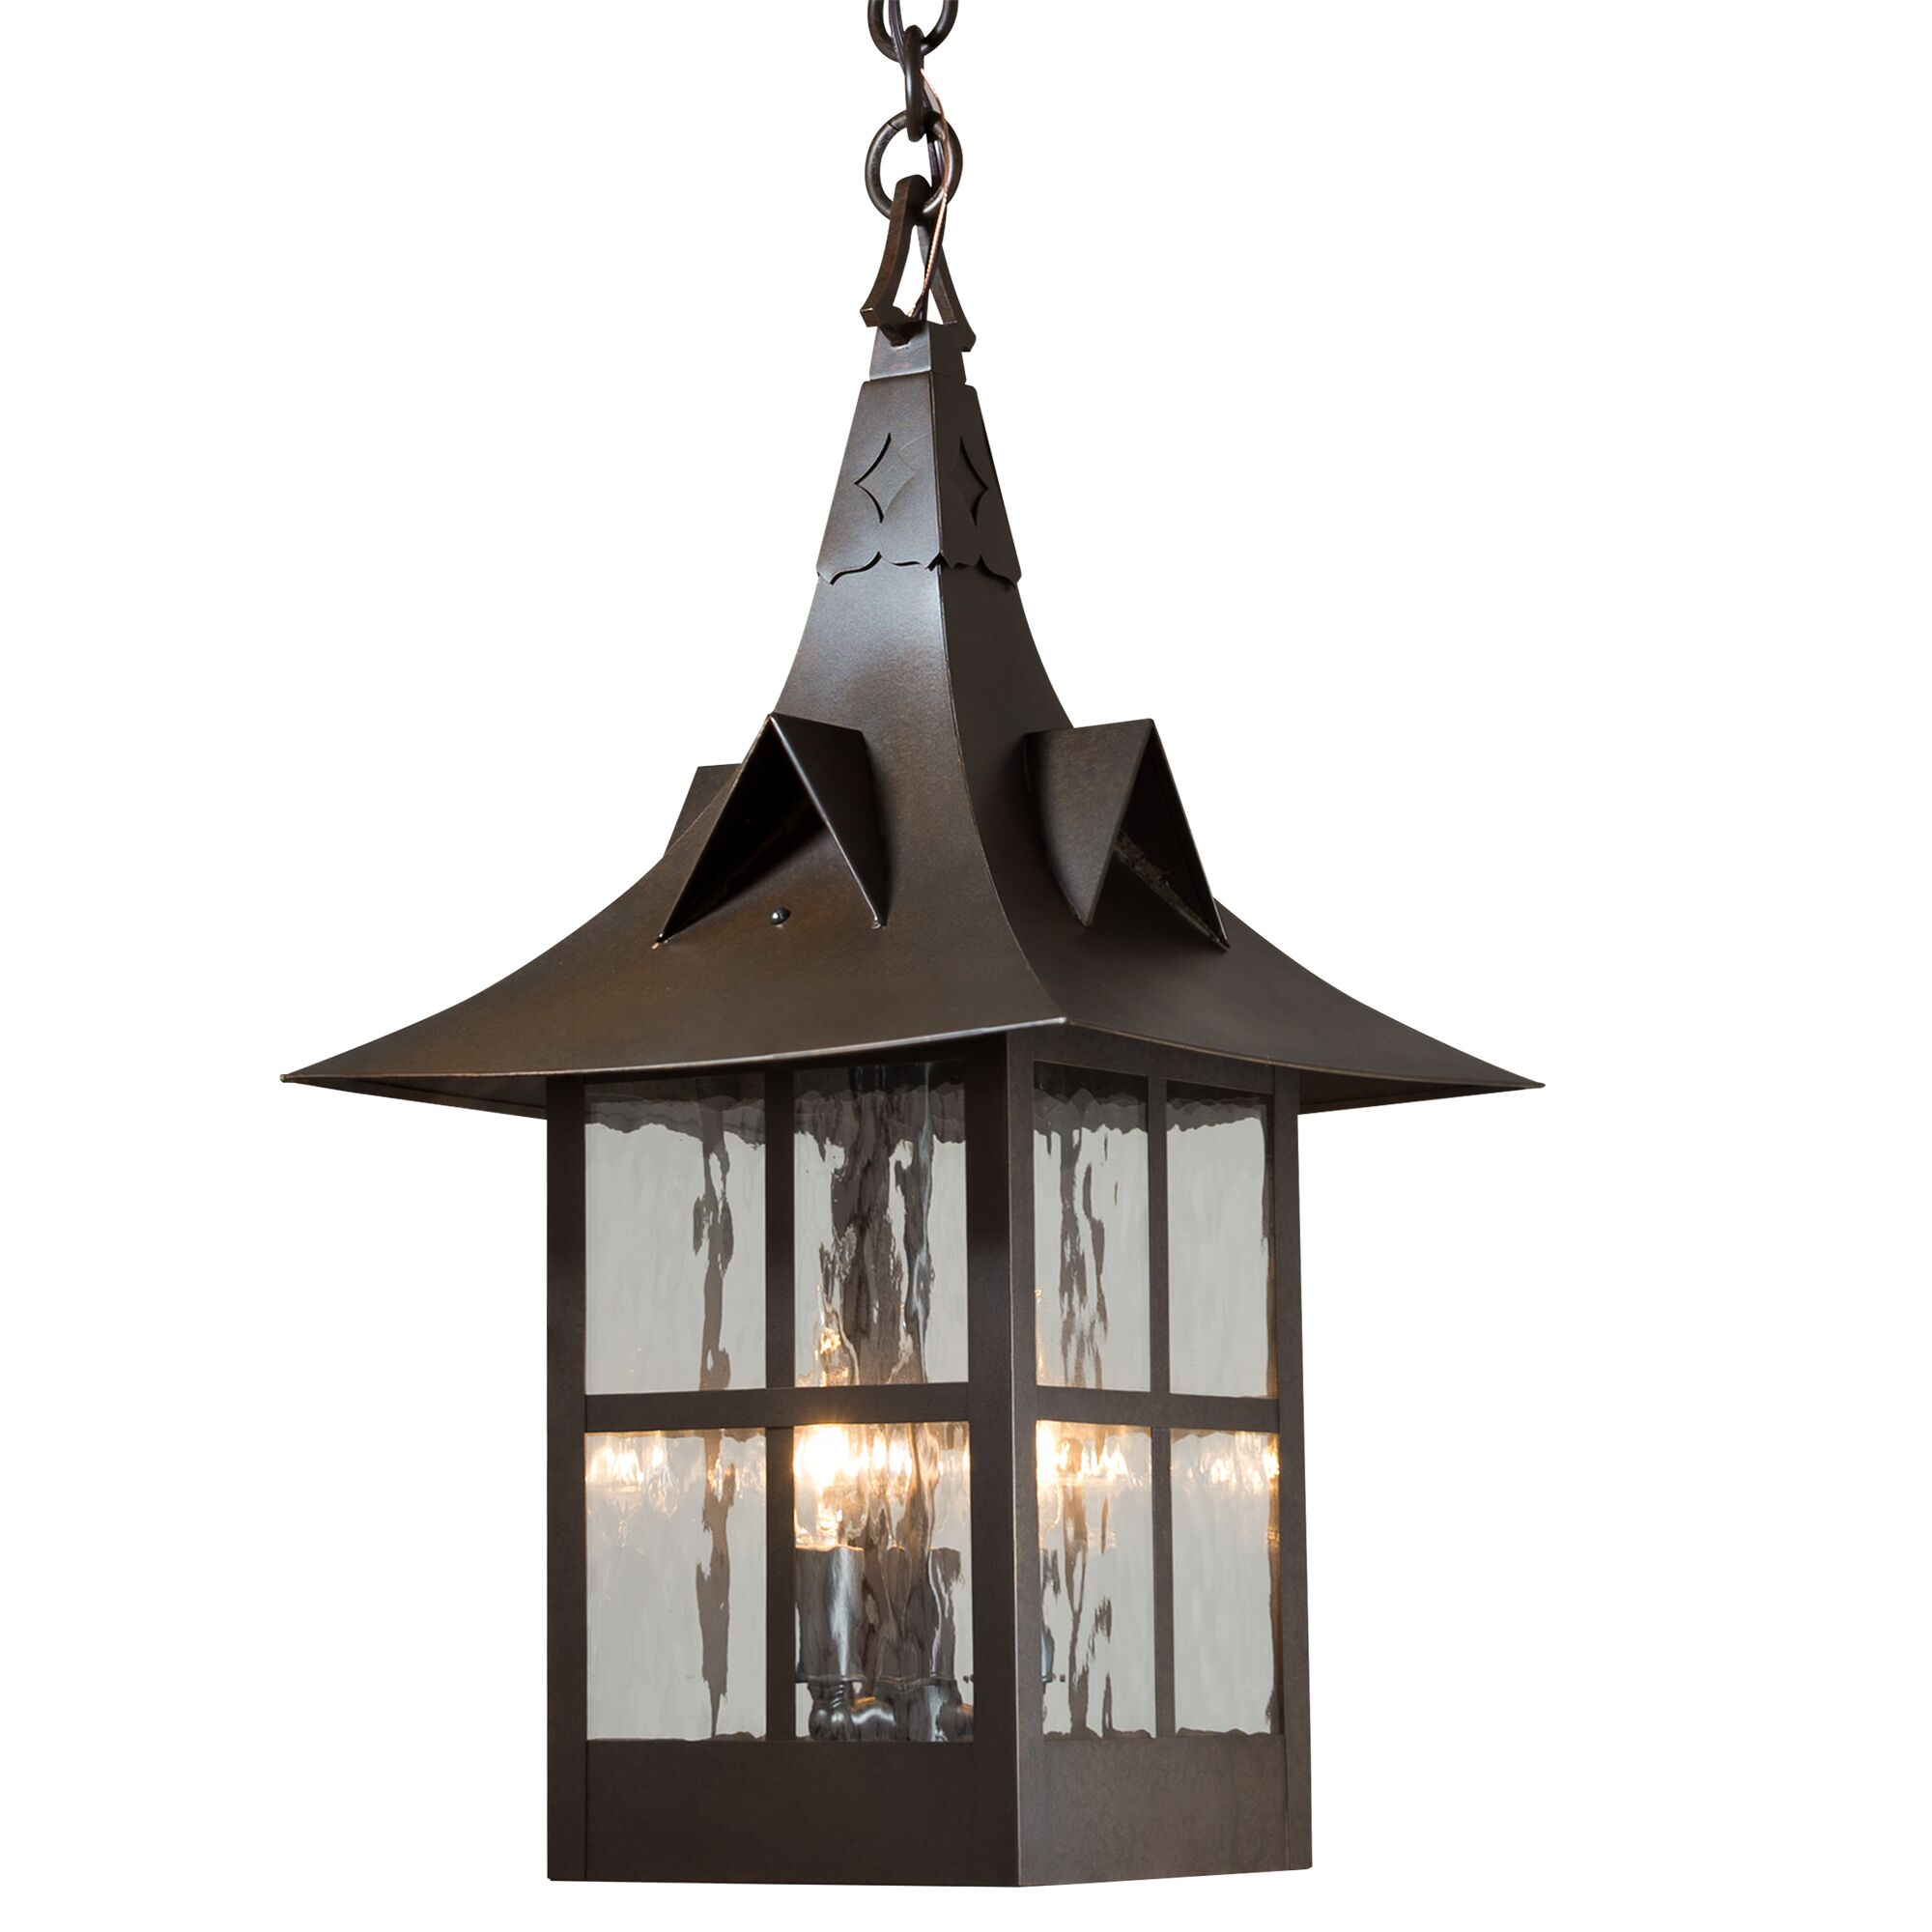 Channelle 4-Light Lantern Pendant Shade Color: Water Glass, Finish: Textured Black, Size: 59